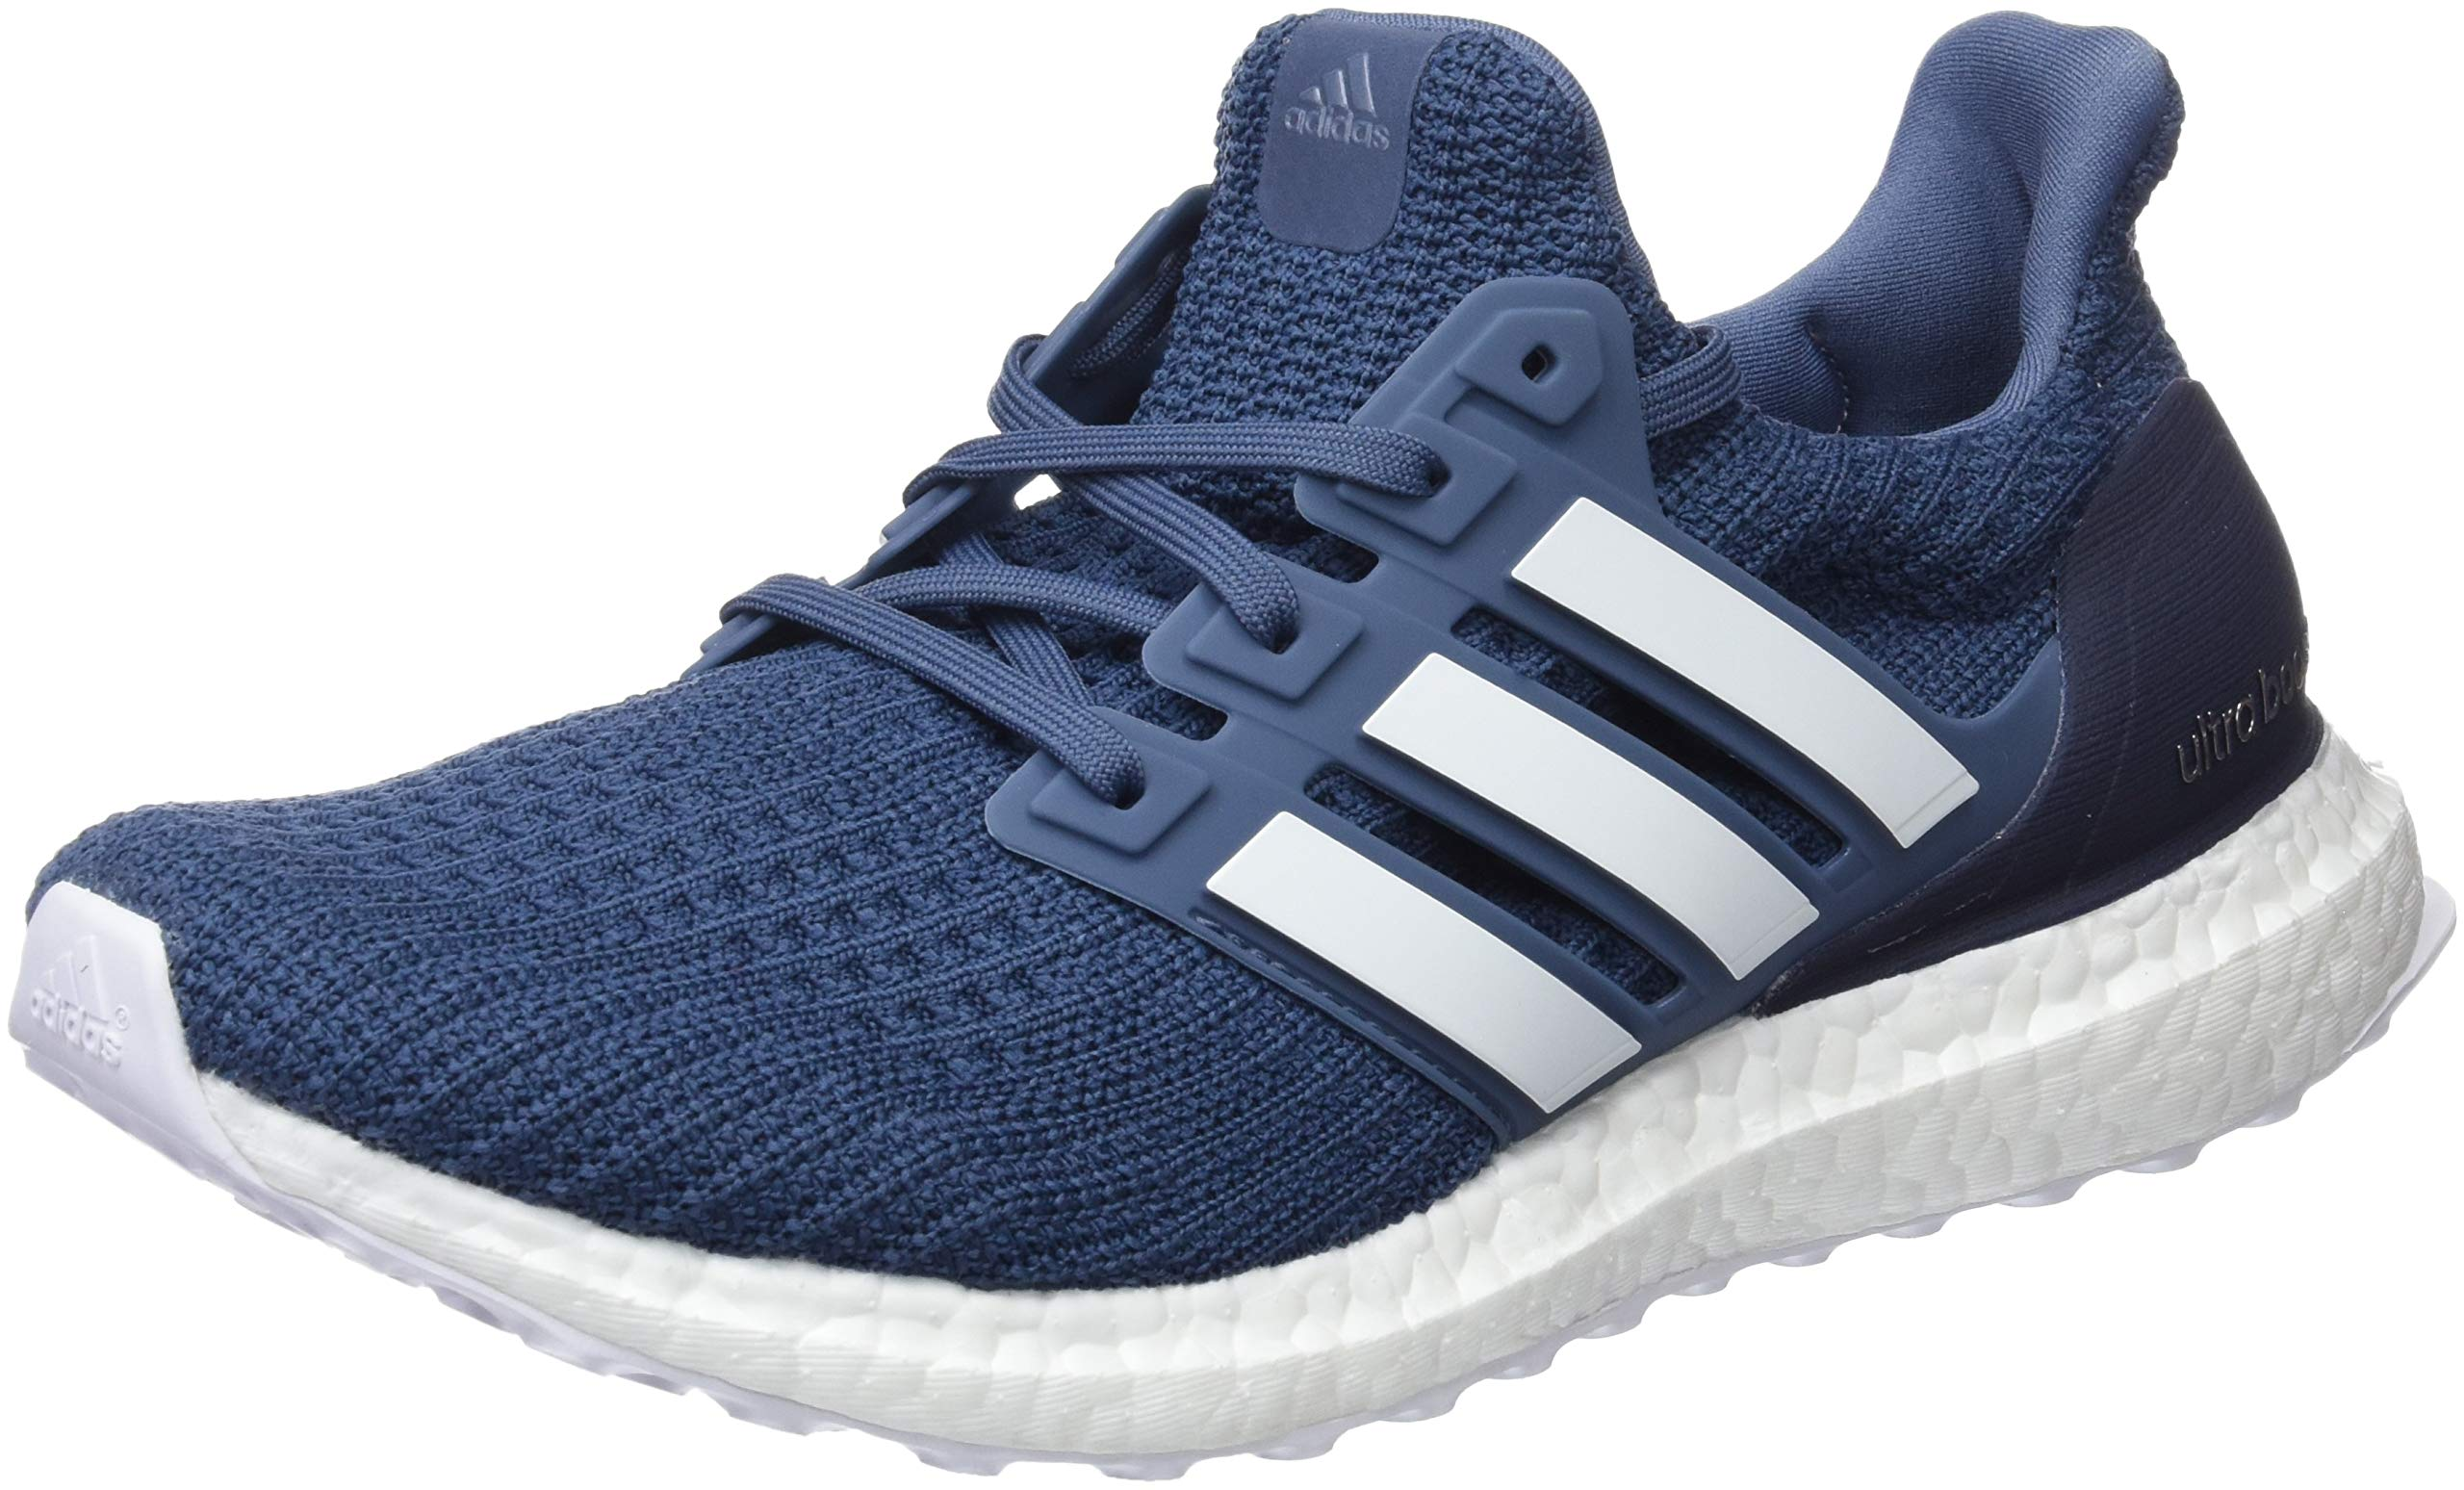 Galleon Adidas Ultraboost Running Shoes AW18 12 Blue